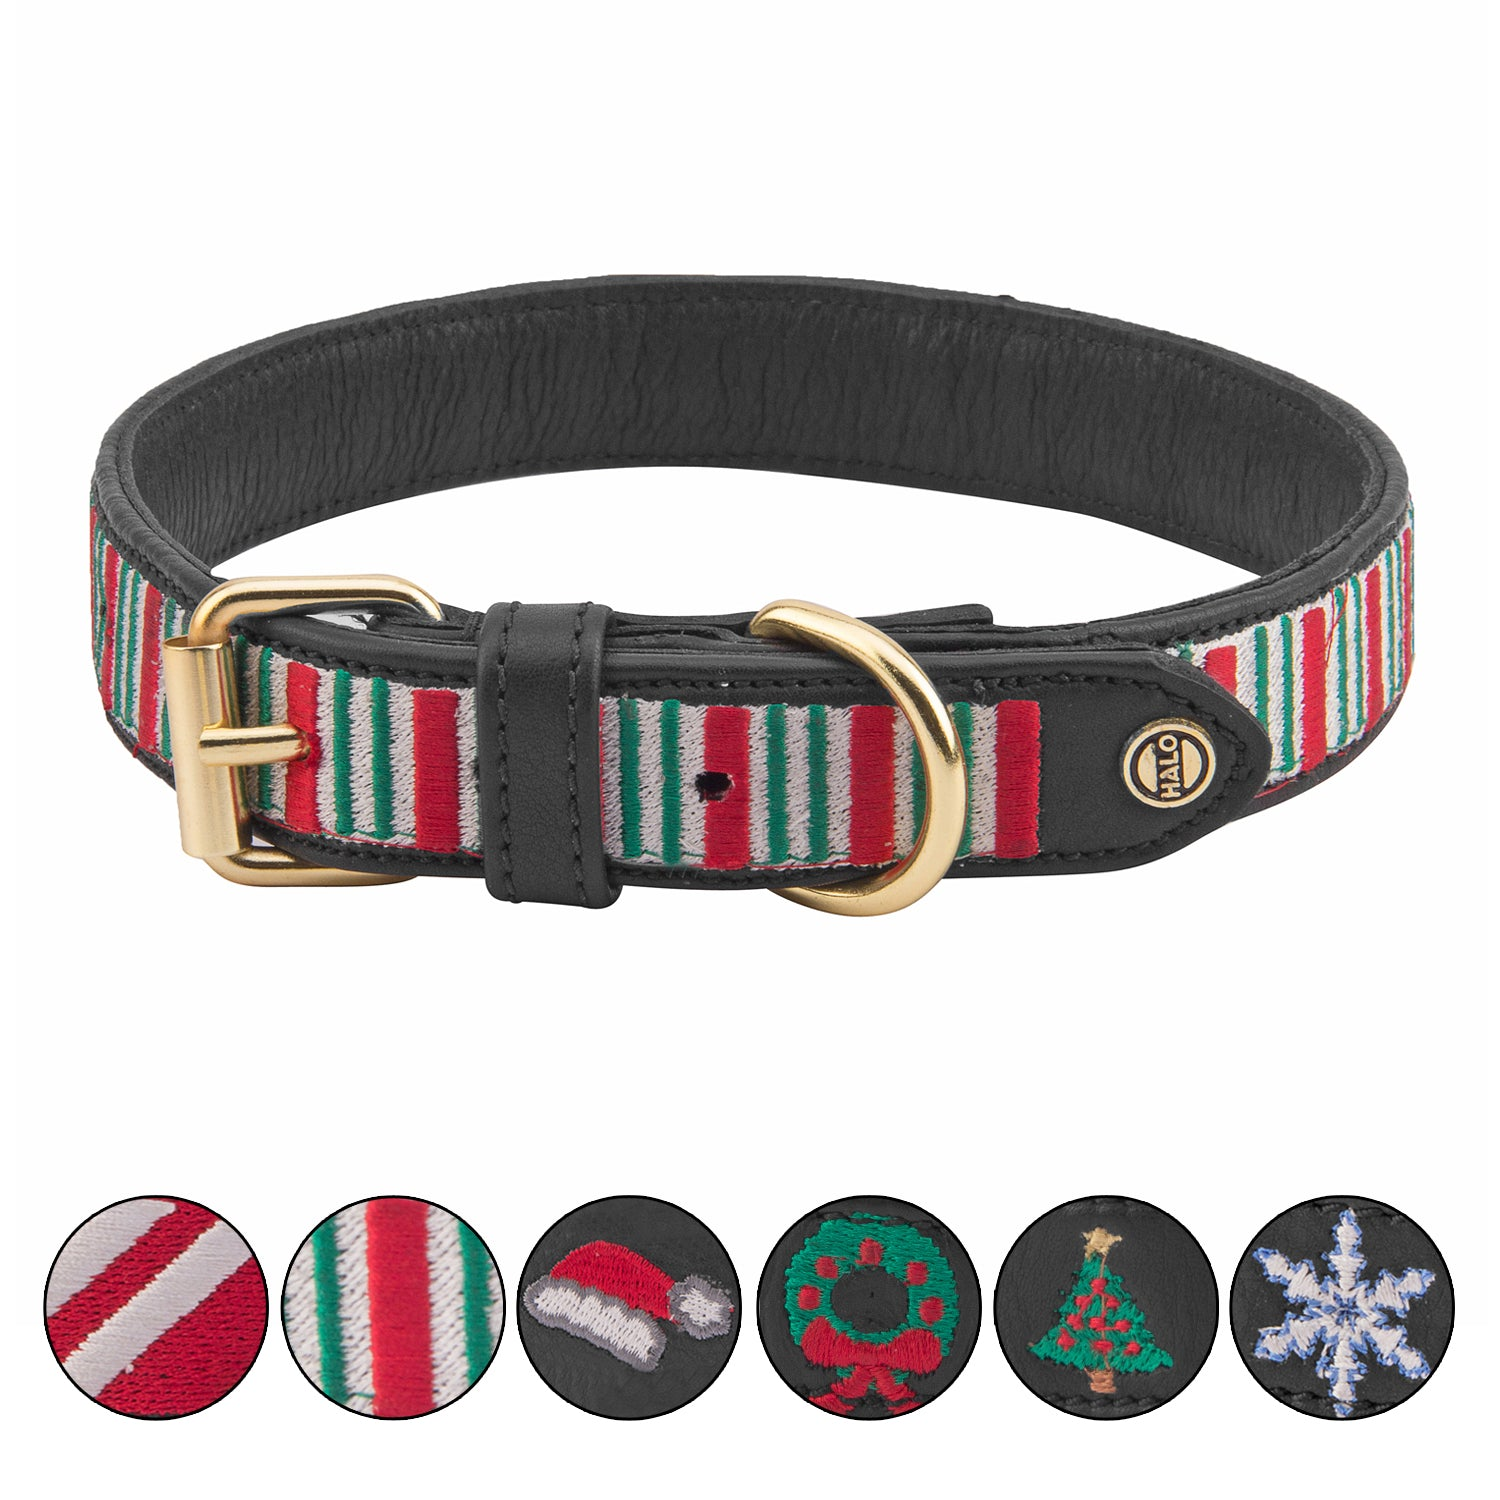 Dog Collar - Leather with Christmas Stripes Embroidery - Halo - Breeches.com